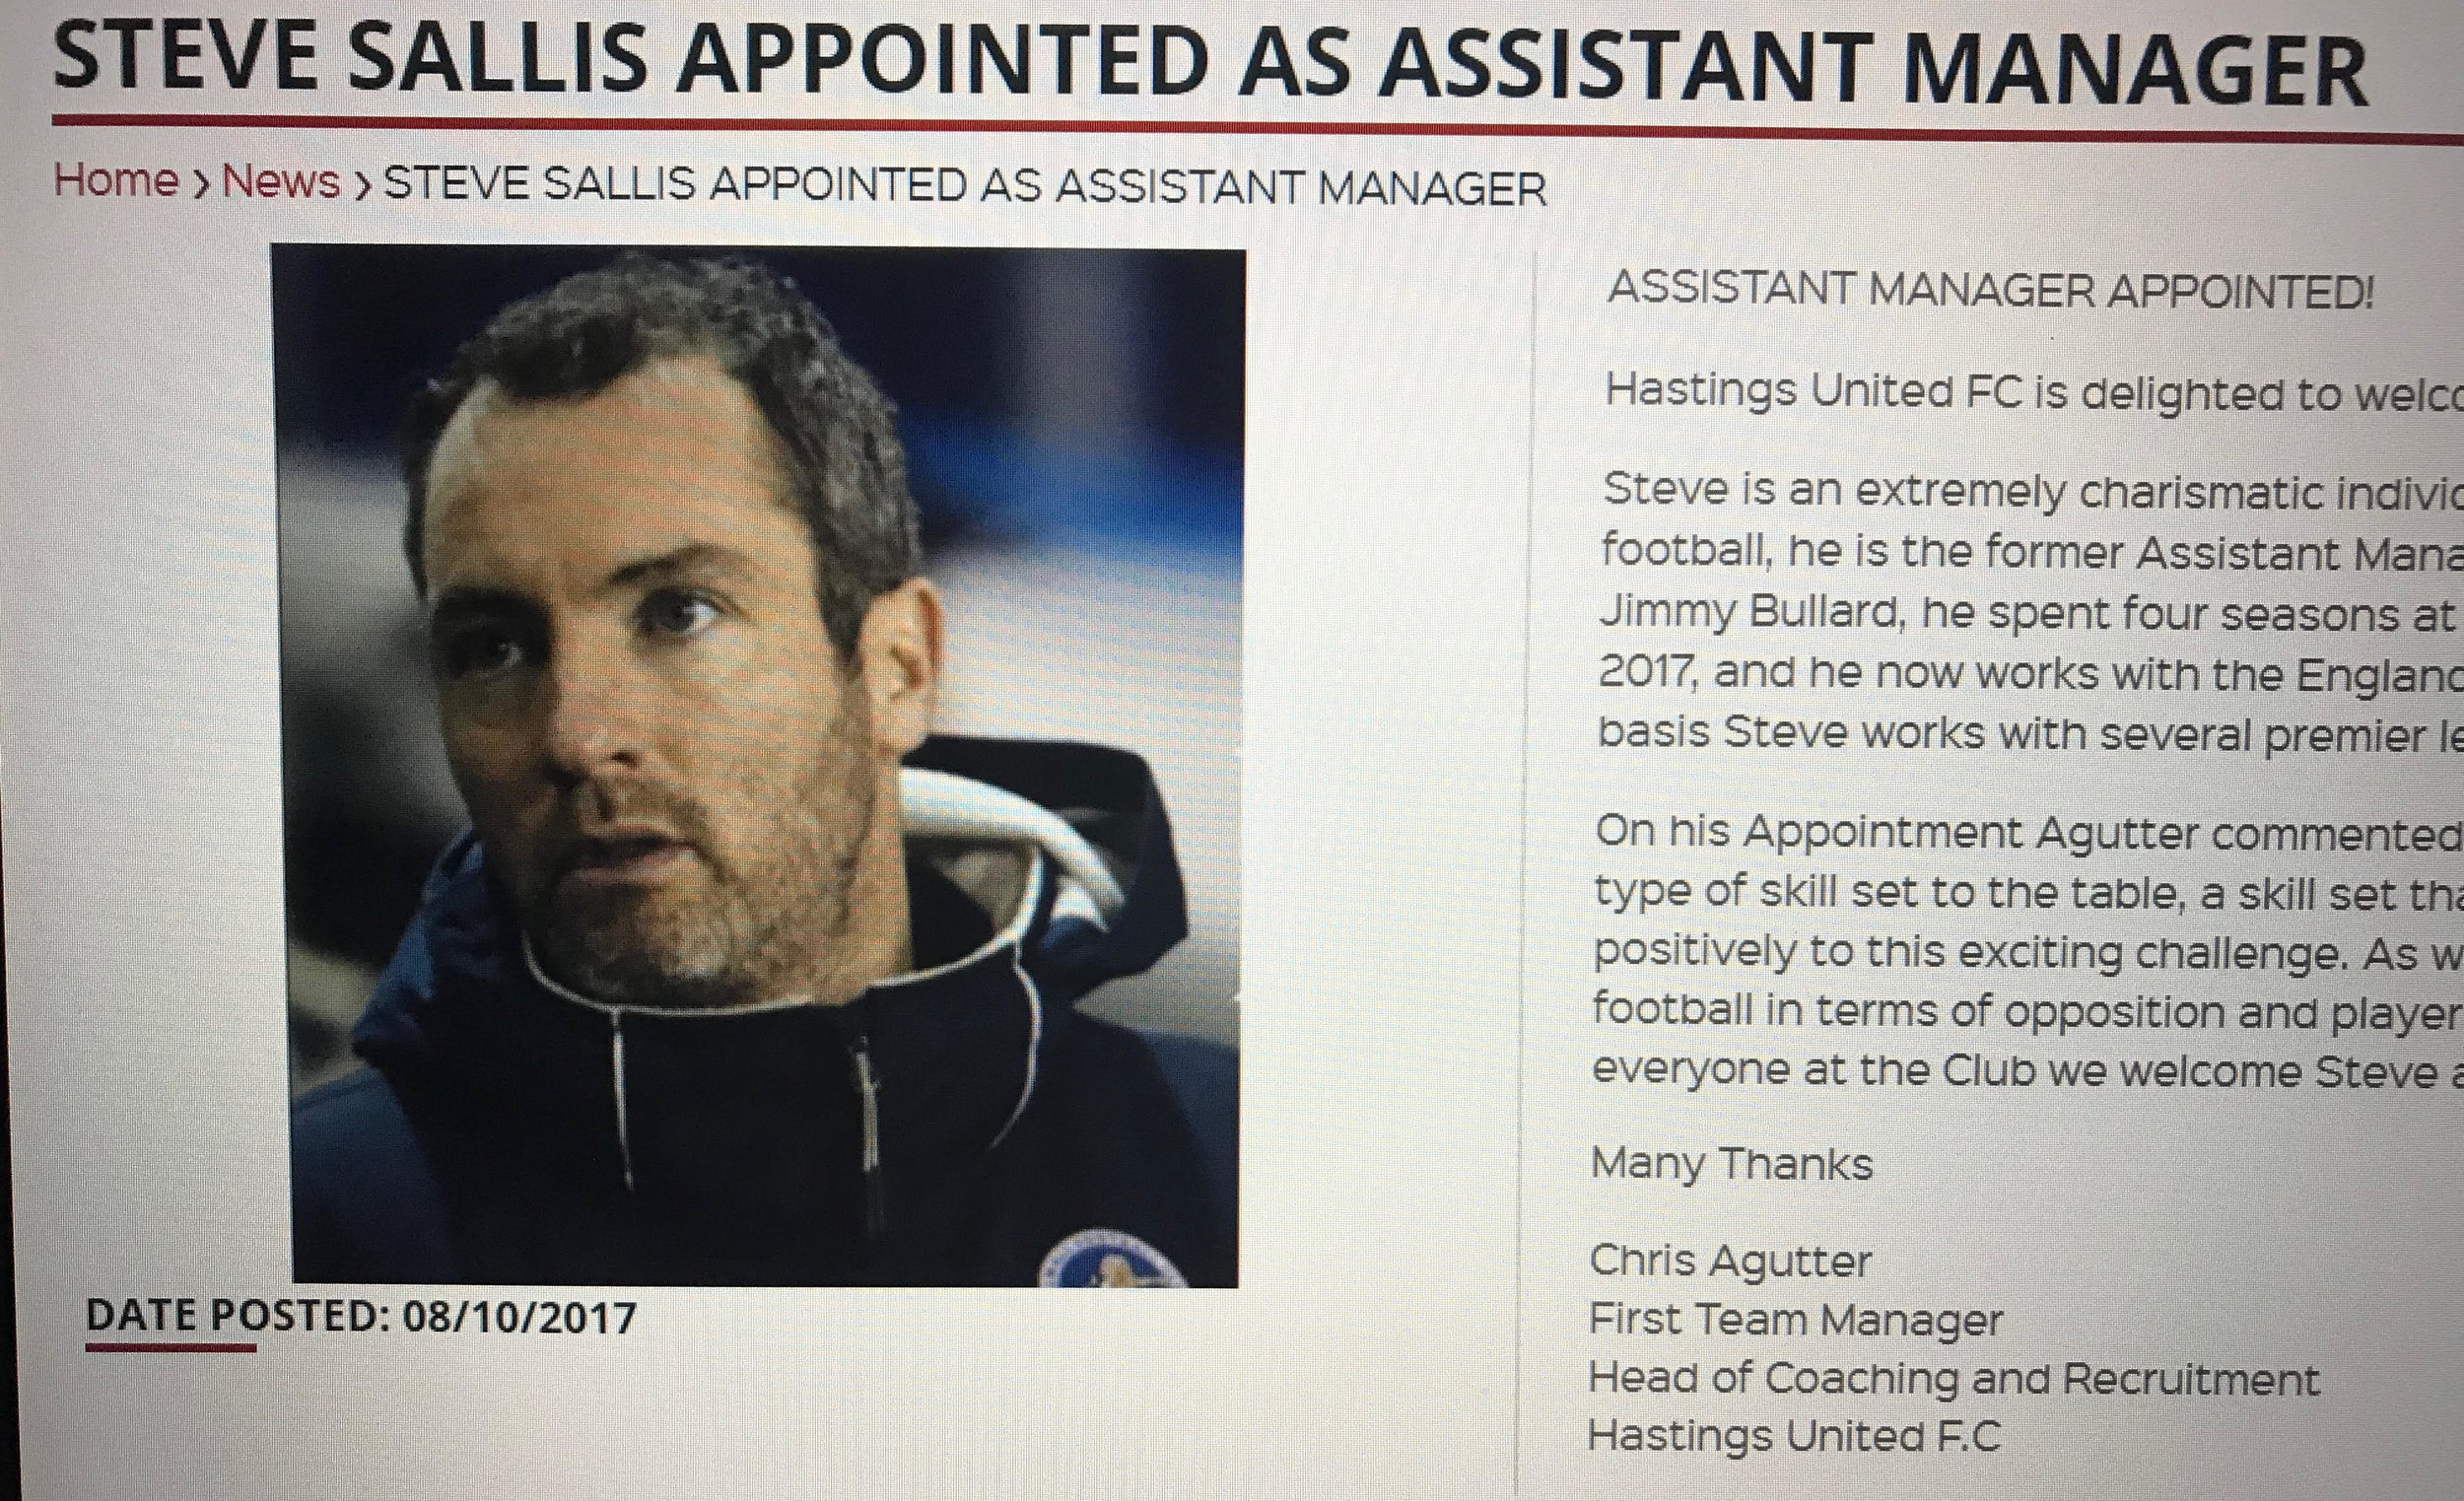 Sallis still manages to coach on the coal face in non-league. Link here:  http://www.hastingsunited.com/news/steve-sallis-appointed-as-assistant-manager